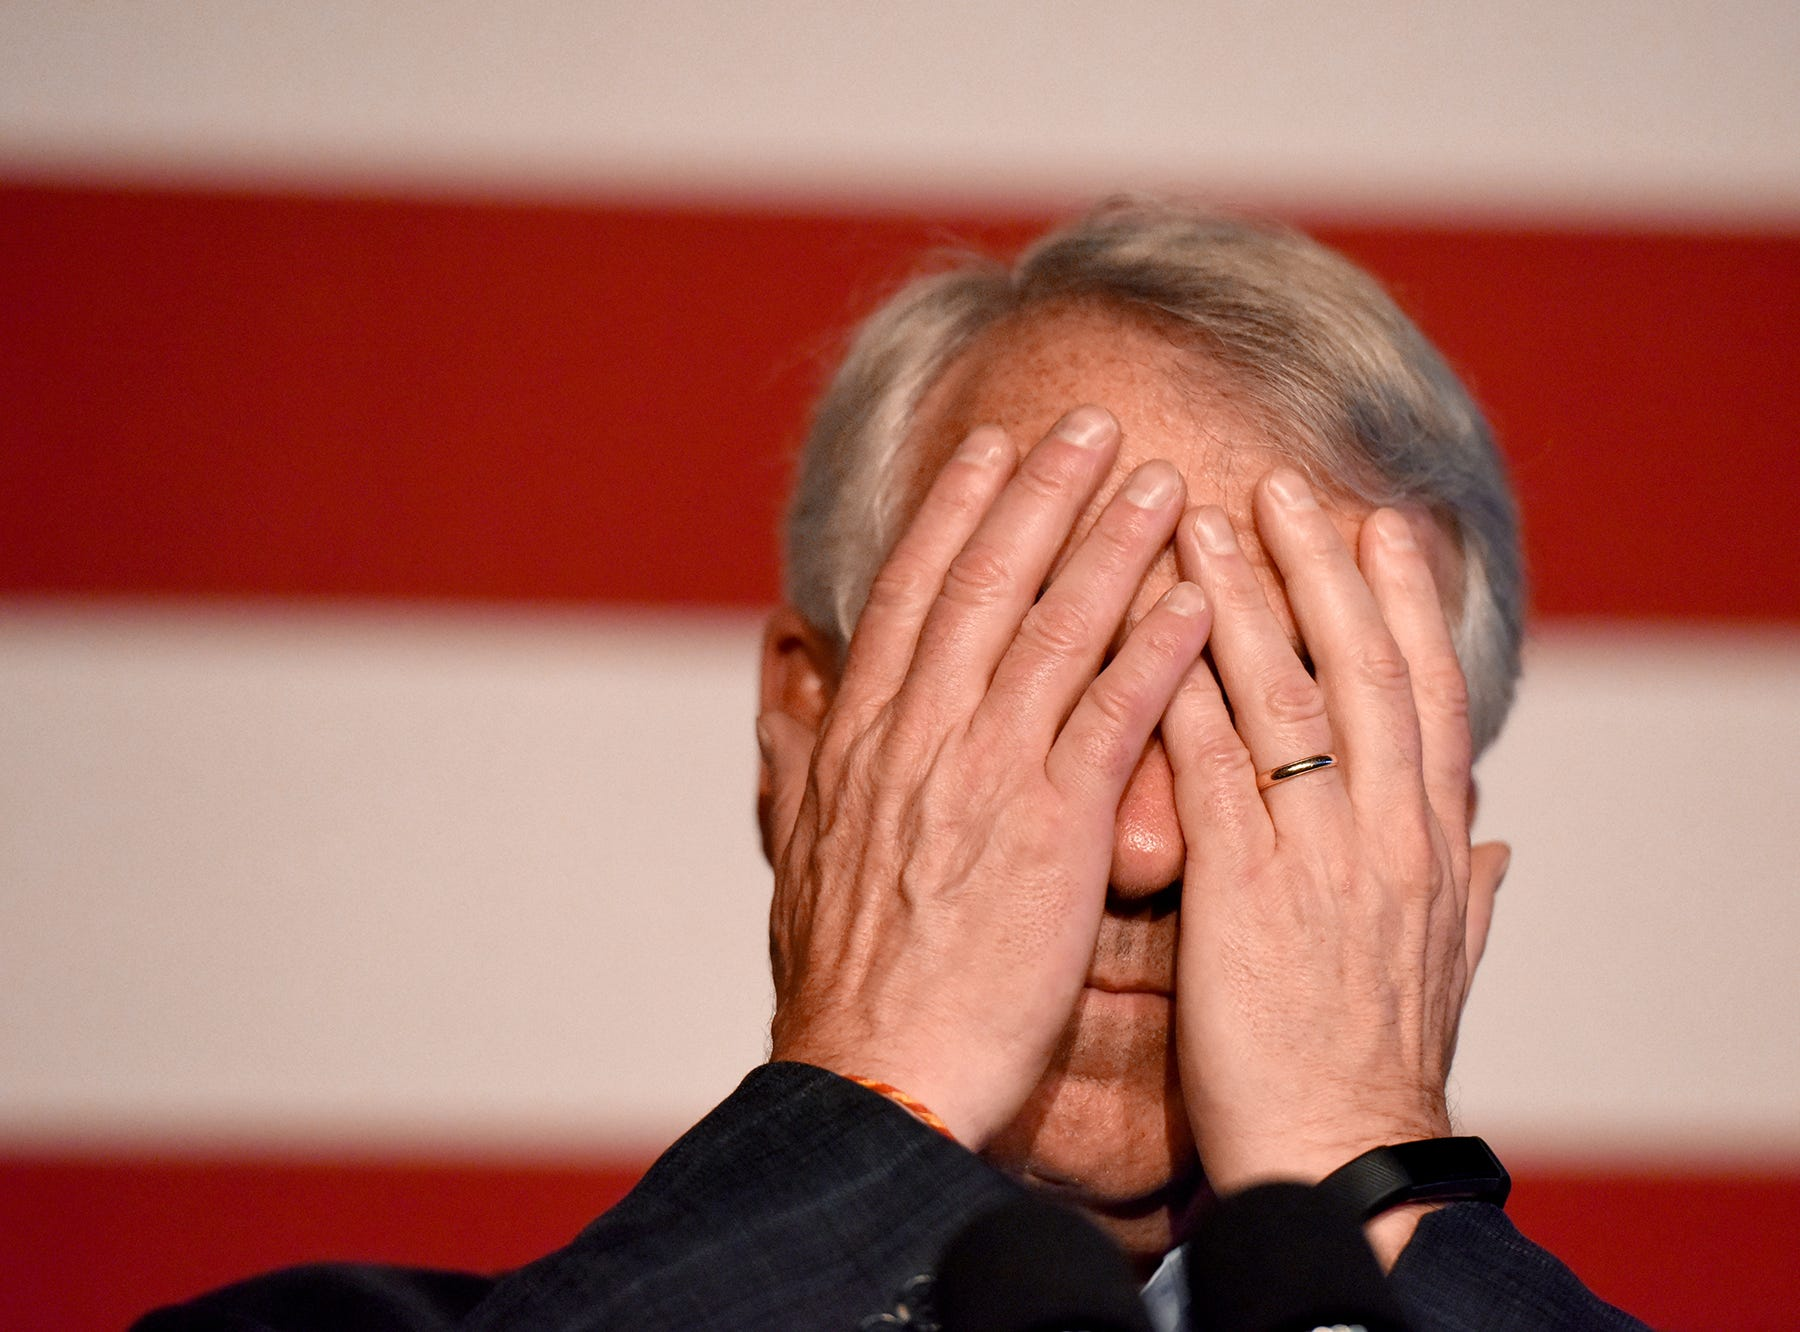 NJ U.S. Senate candidate Republican Bob Hugin lost his bid to beat incumbent Senator Bob Menendez during midterm elections on Tuesday, November, 6, 2018. Hugin covers his eyes while giving a concession speech to his supporters at the Stage House Tavern in Mountainside on Tuesday night.